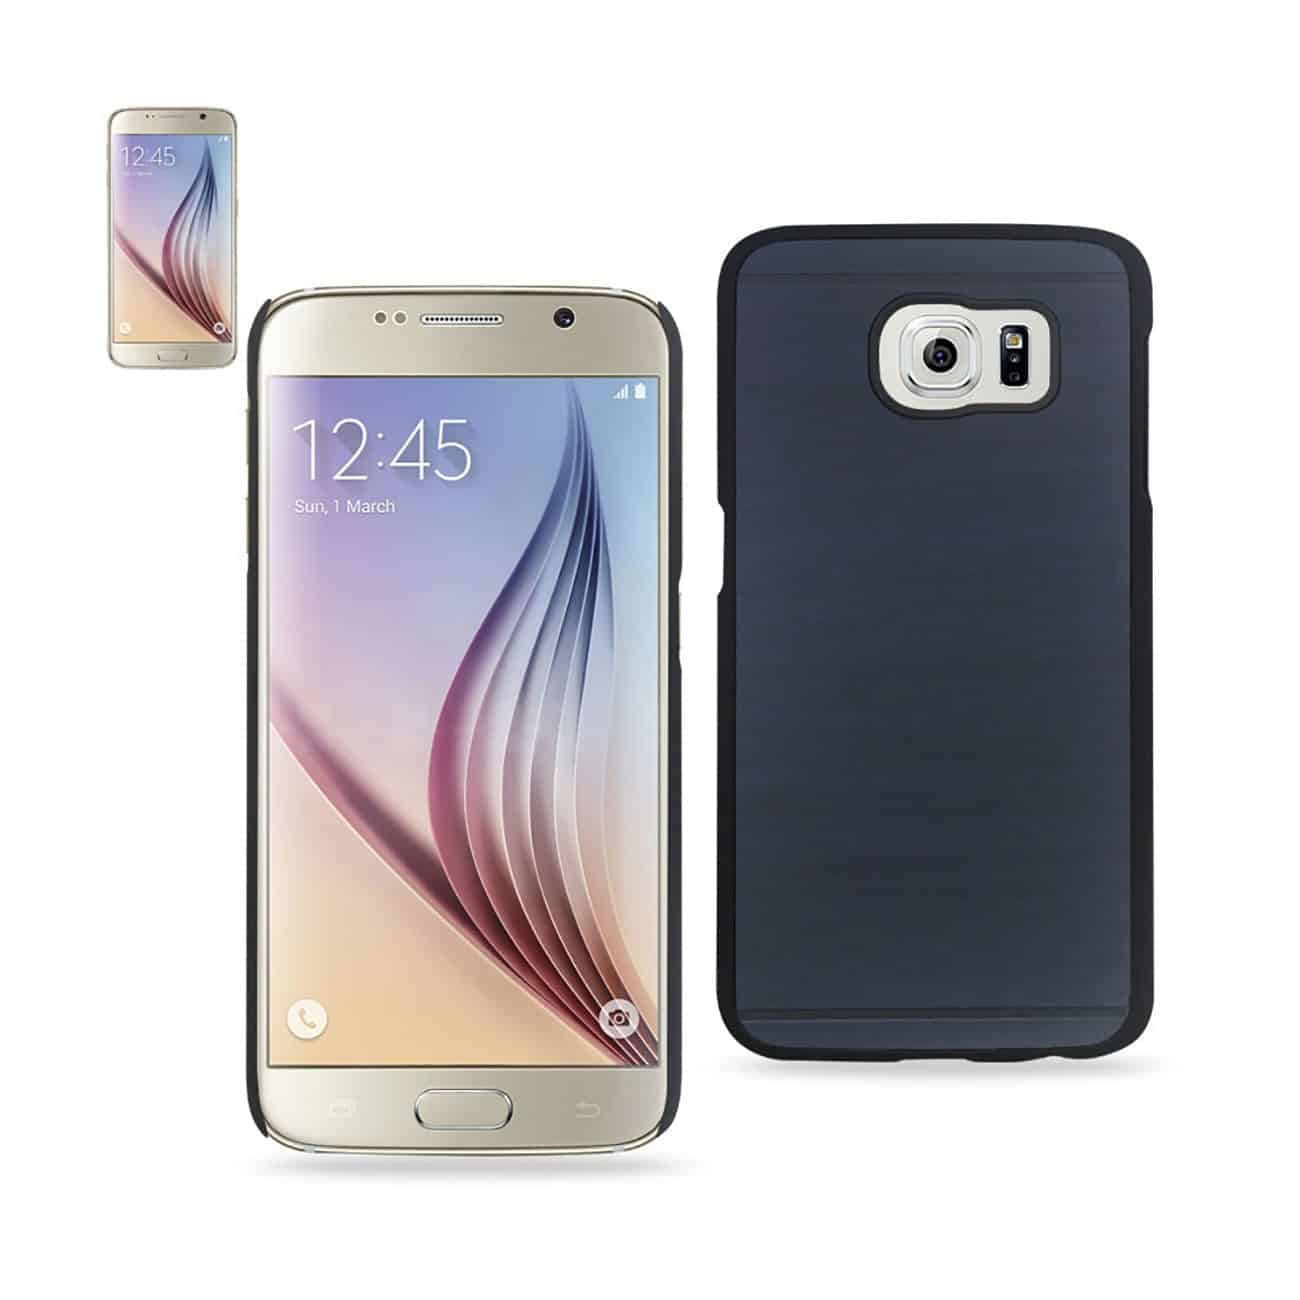 SAMSUNG GALAXY S6 WOOD PATTERN CASE IN NAVY